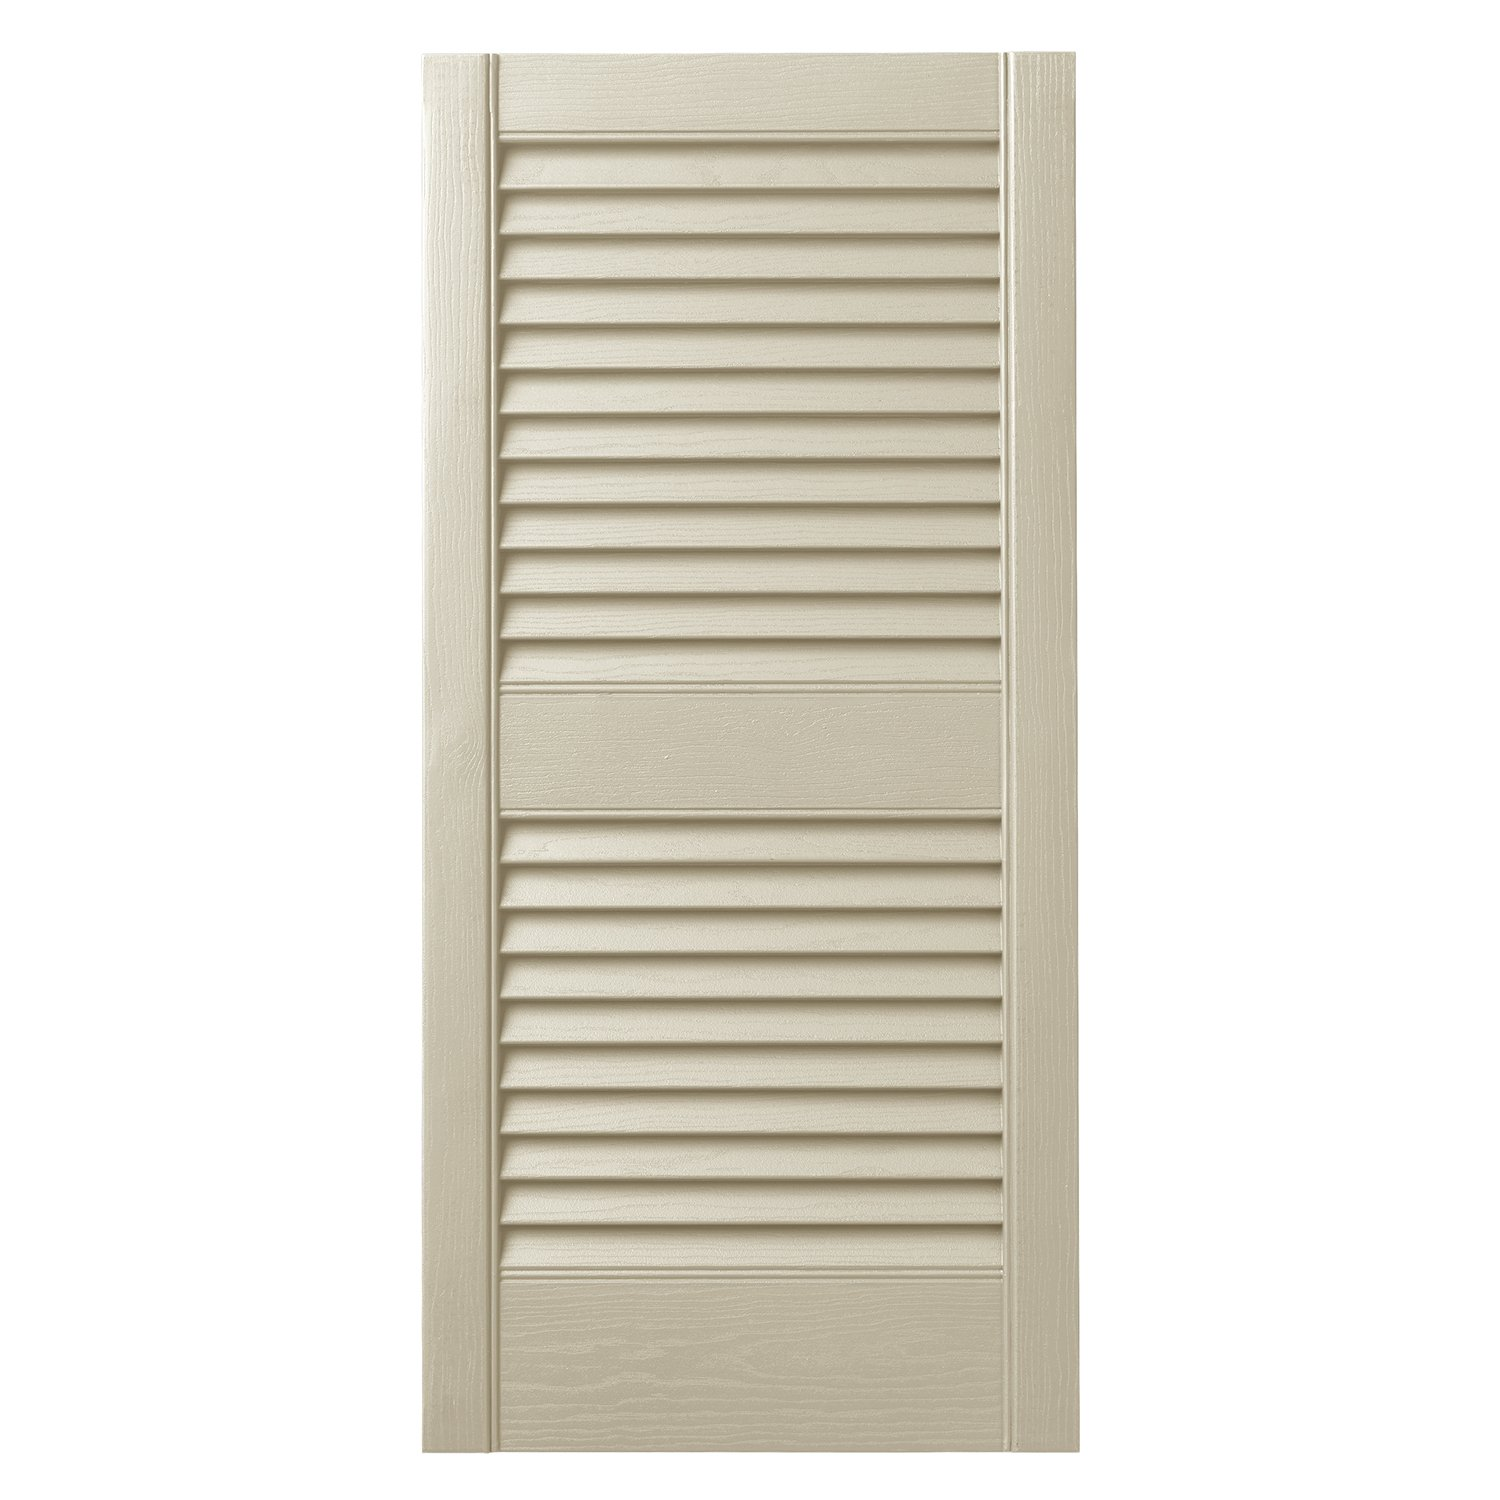 Ply Gem Shutters and Accents VINLV1525 93 Louvered Shutter 15 Spanish Moss